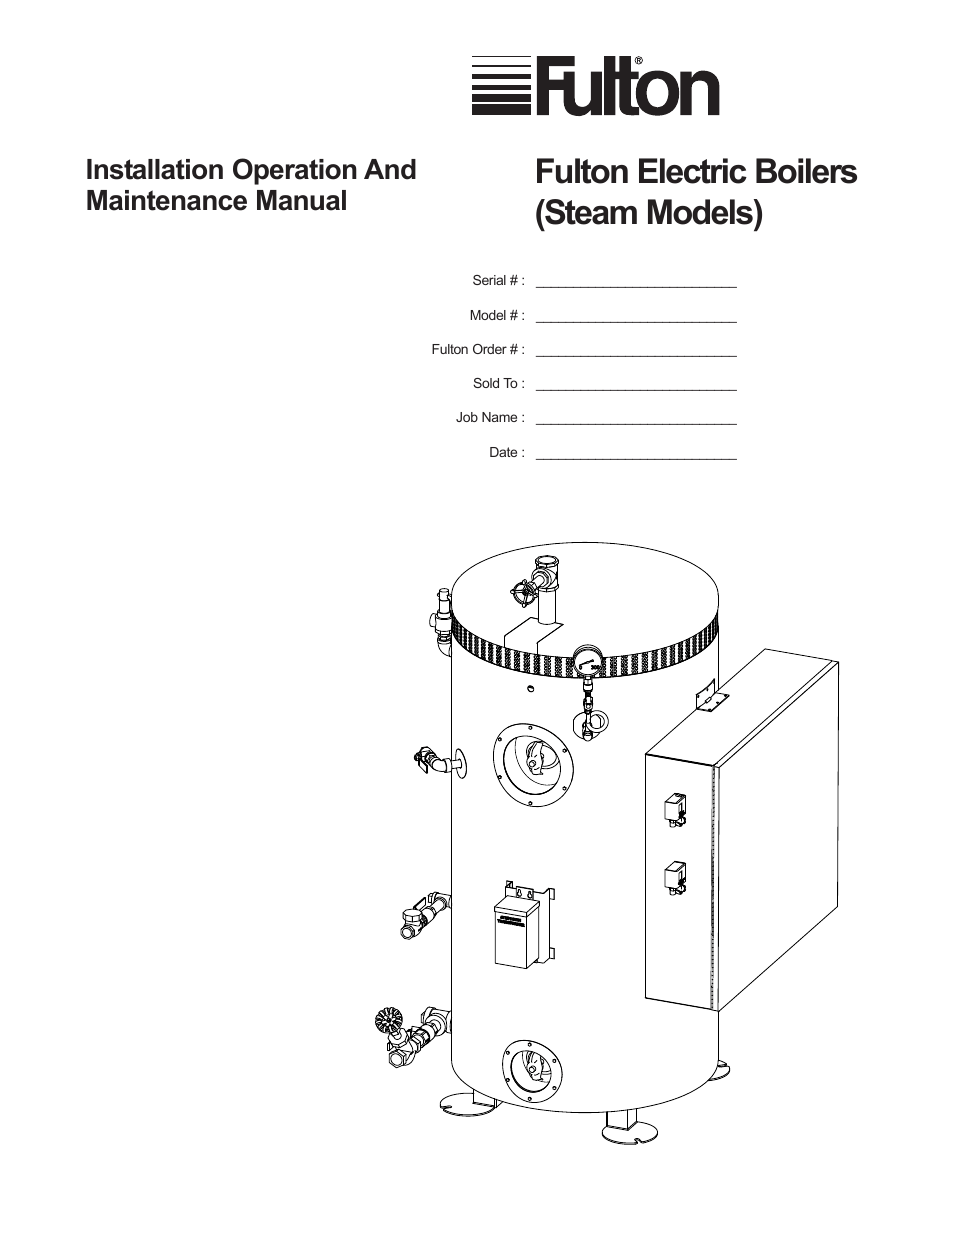 fulton electric fb l steam boiler page1?resize\=665%2C861 wiring diagram 700 434 gas valve gas valve troubleshooting  at bayanpartner.co